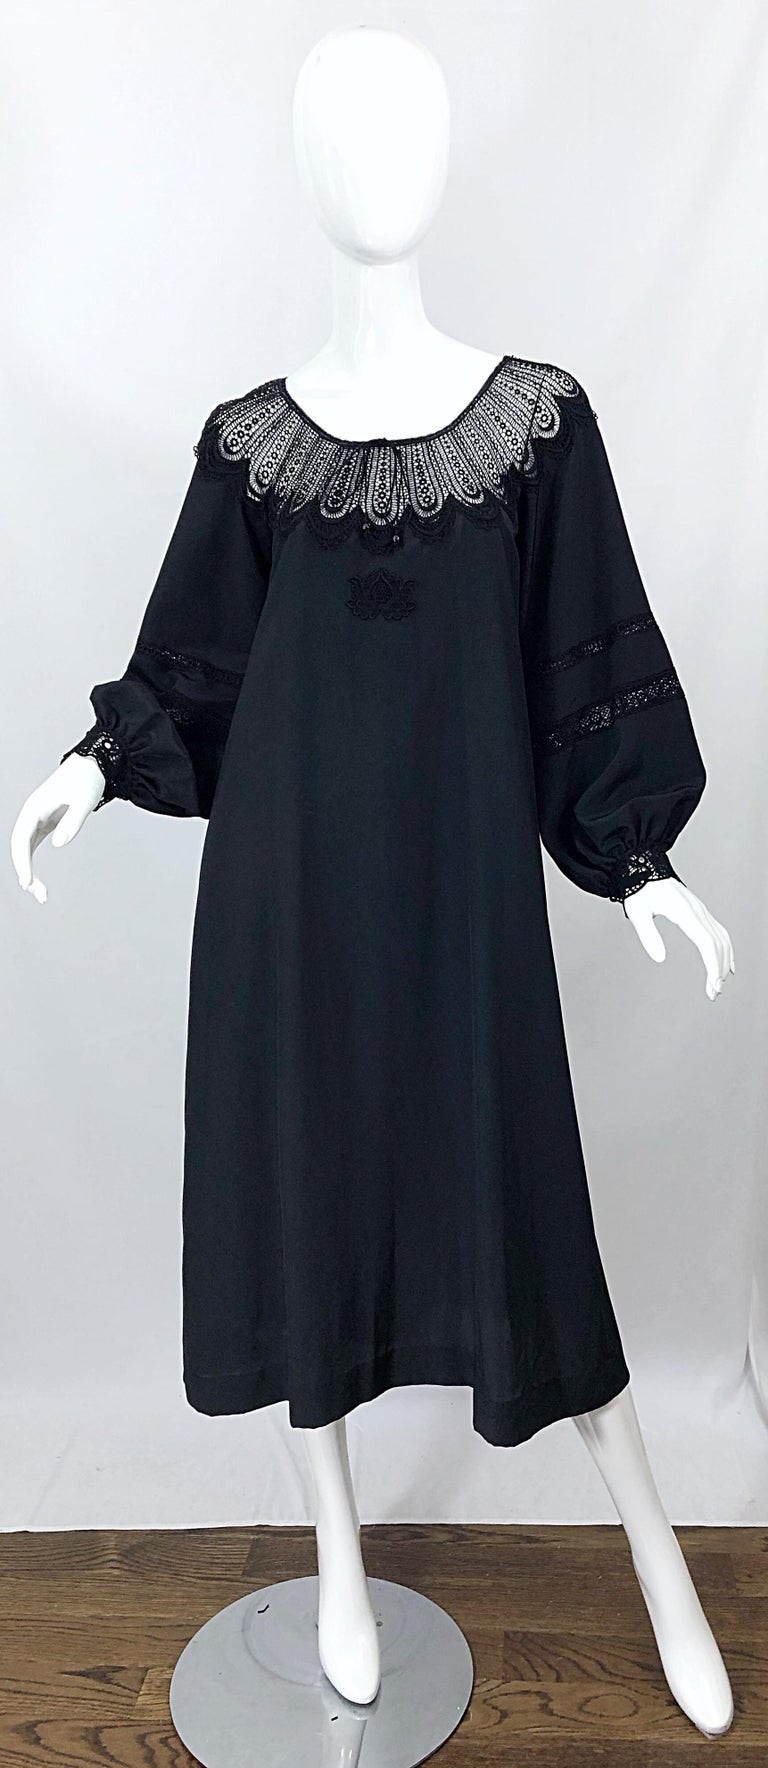 Chic 70s GIORGIO DI SANT ANGELO black crochet bishop sleeve smock dress! Features cut-out crochet detail at neck and mid arm. Adjustable ties at center front neck. Simply slips over the head. Great belted or alone. The pictured vintage Paloma